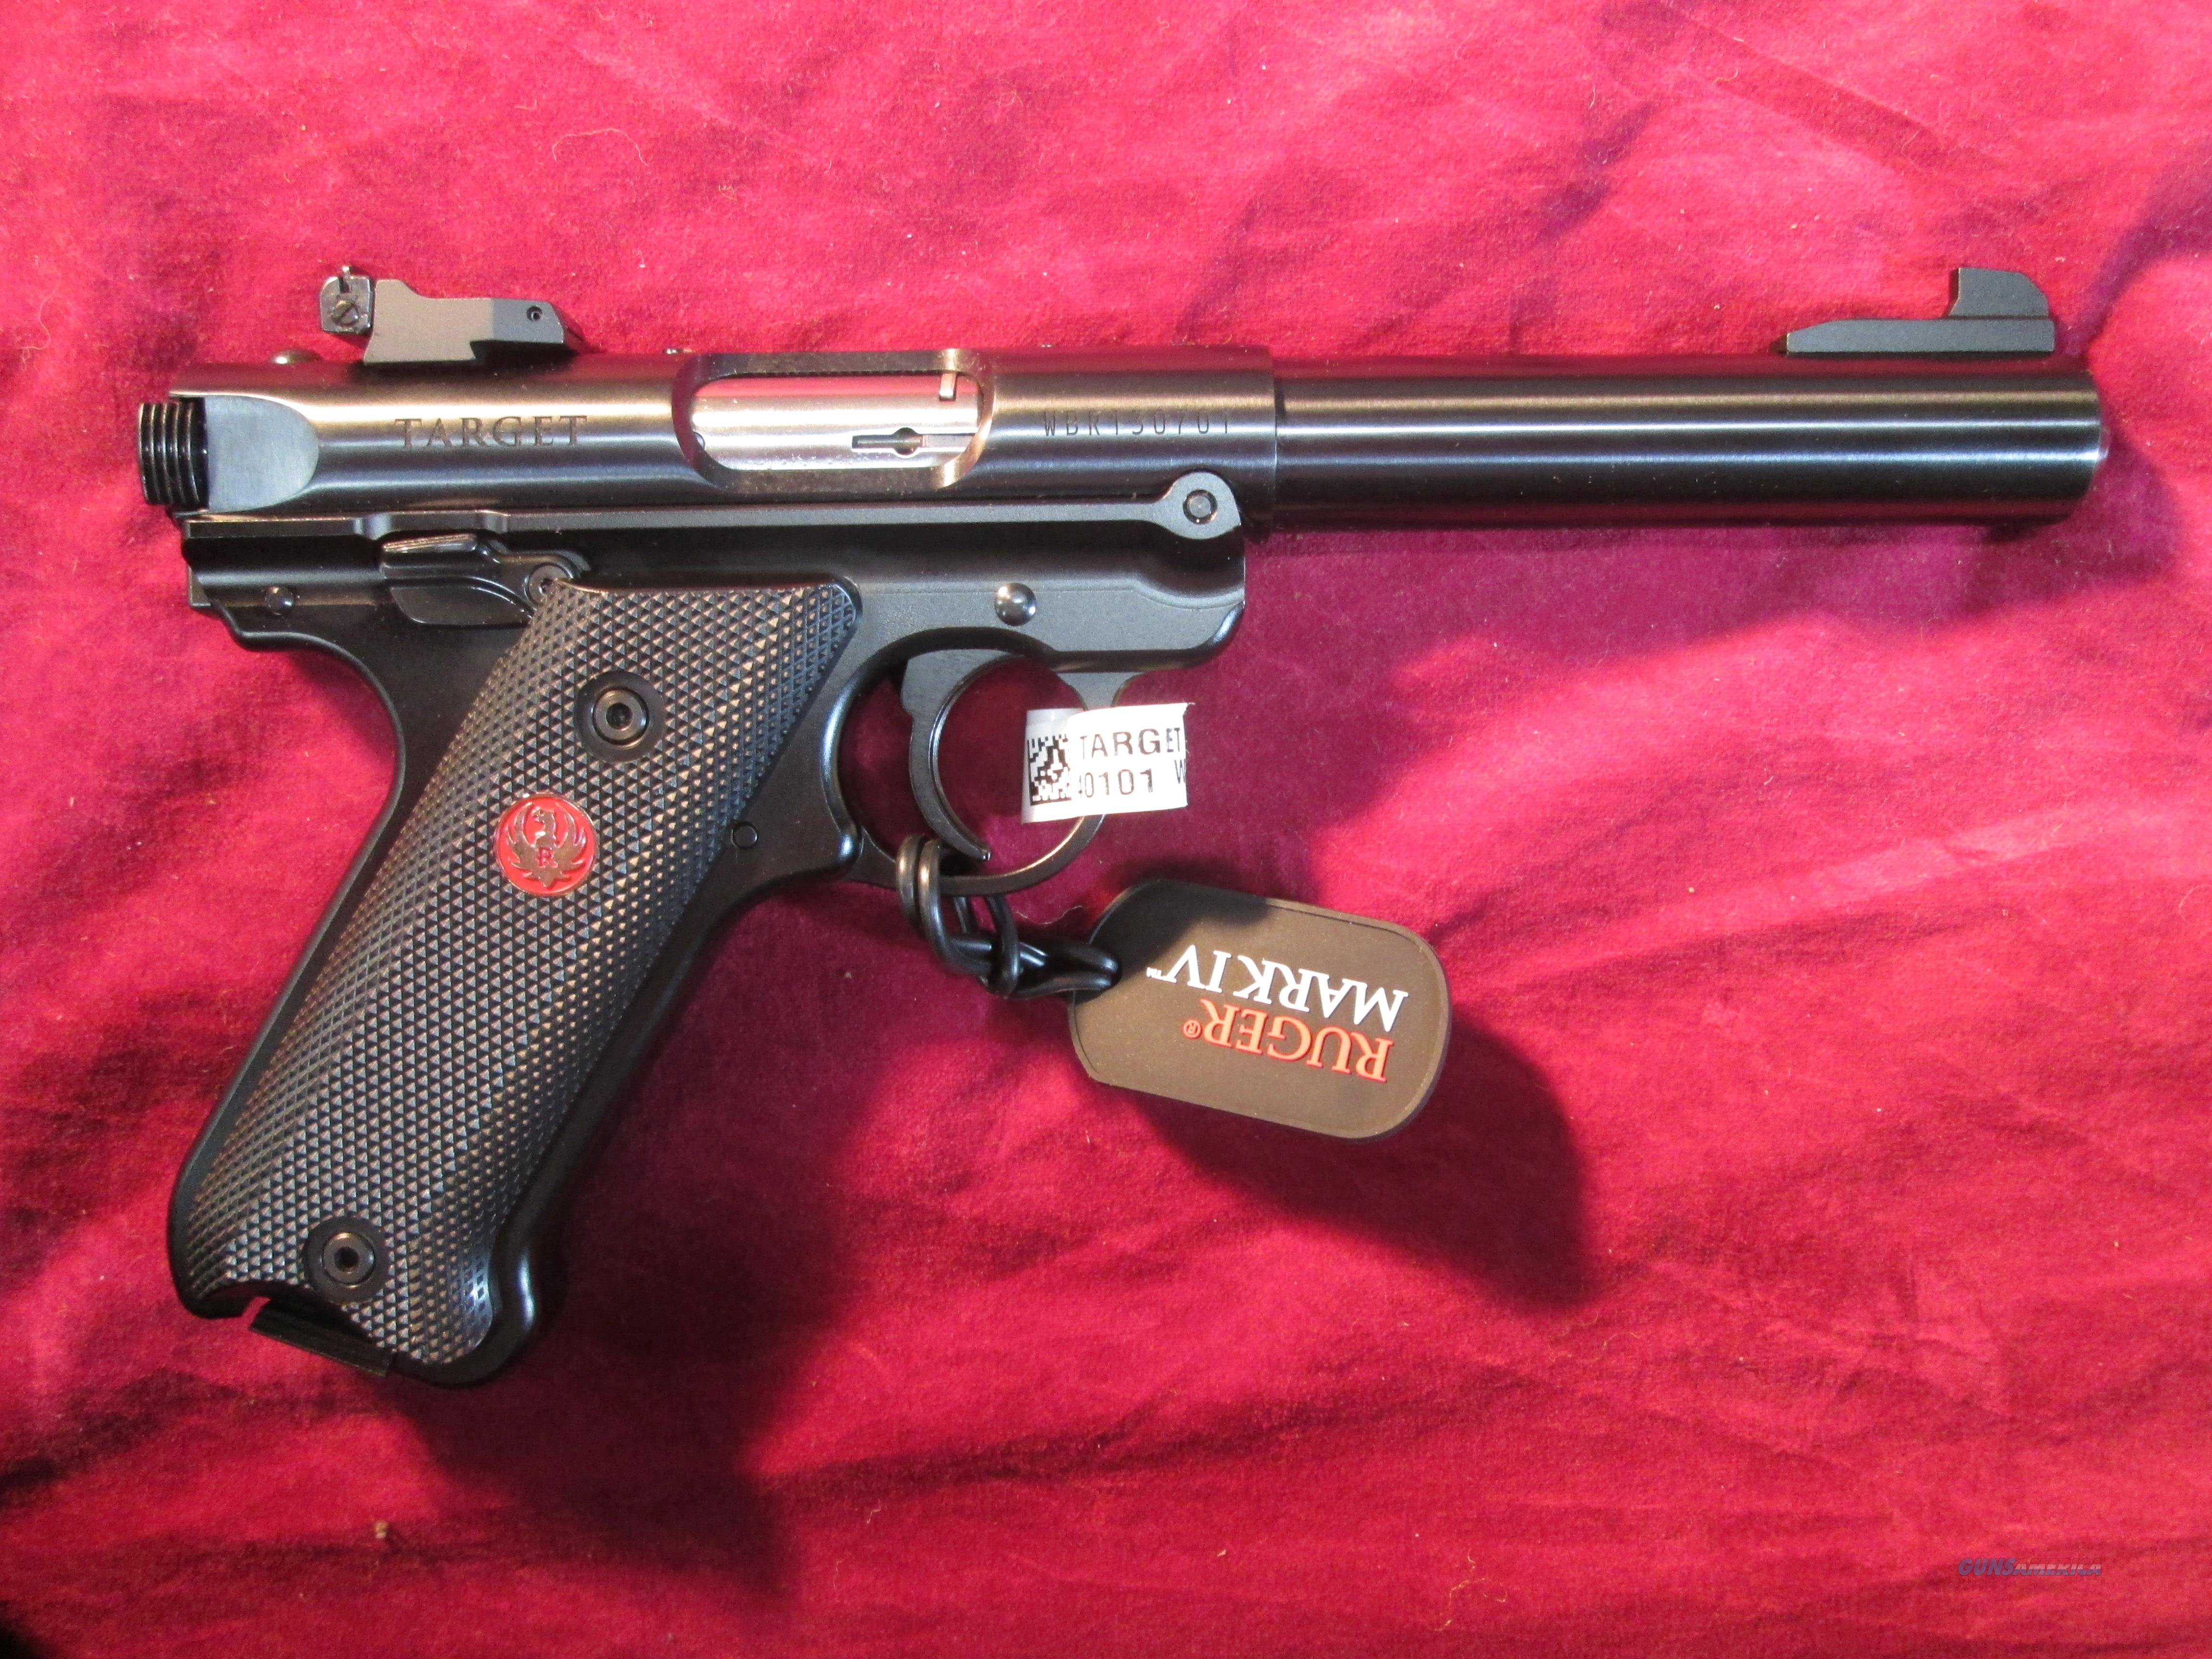 "RUGER MARK IV 5.5"" TARGET BLACK 22LR NEW (40101)  Guns > Pistols > Ruger Semi-Auto Pistols > Mark I/II/III/IV Family"